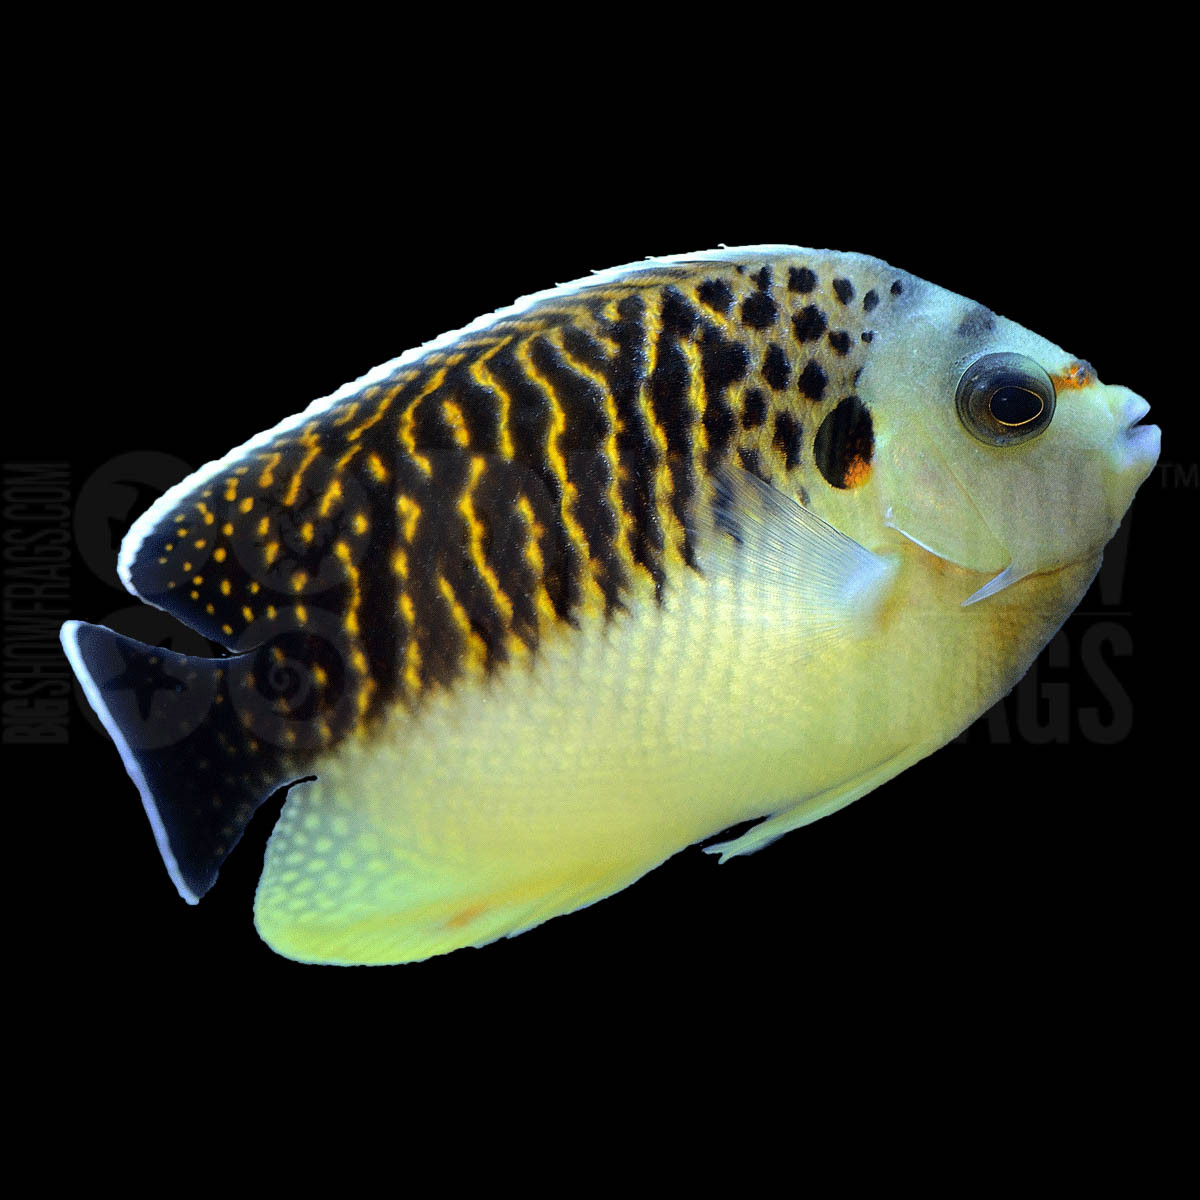 Tiger kingi angelfish africa bigshow frags for Fish compatible with angelfish